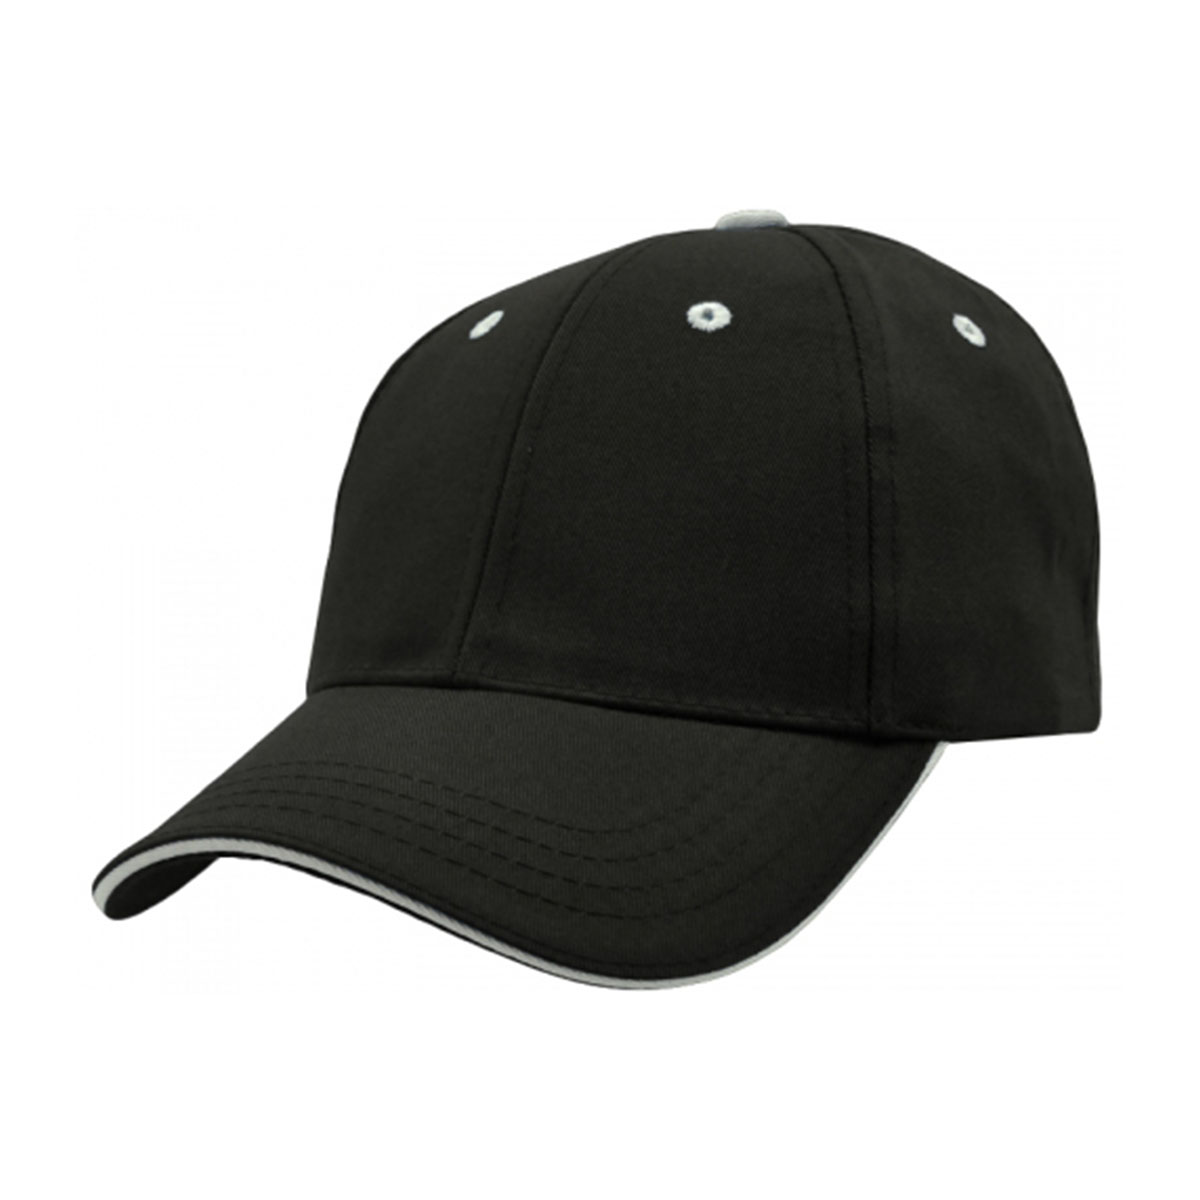 PET/Cotton Sandwich Cap-Black / White